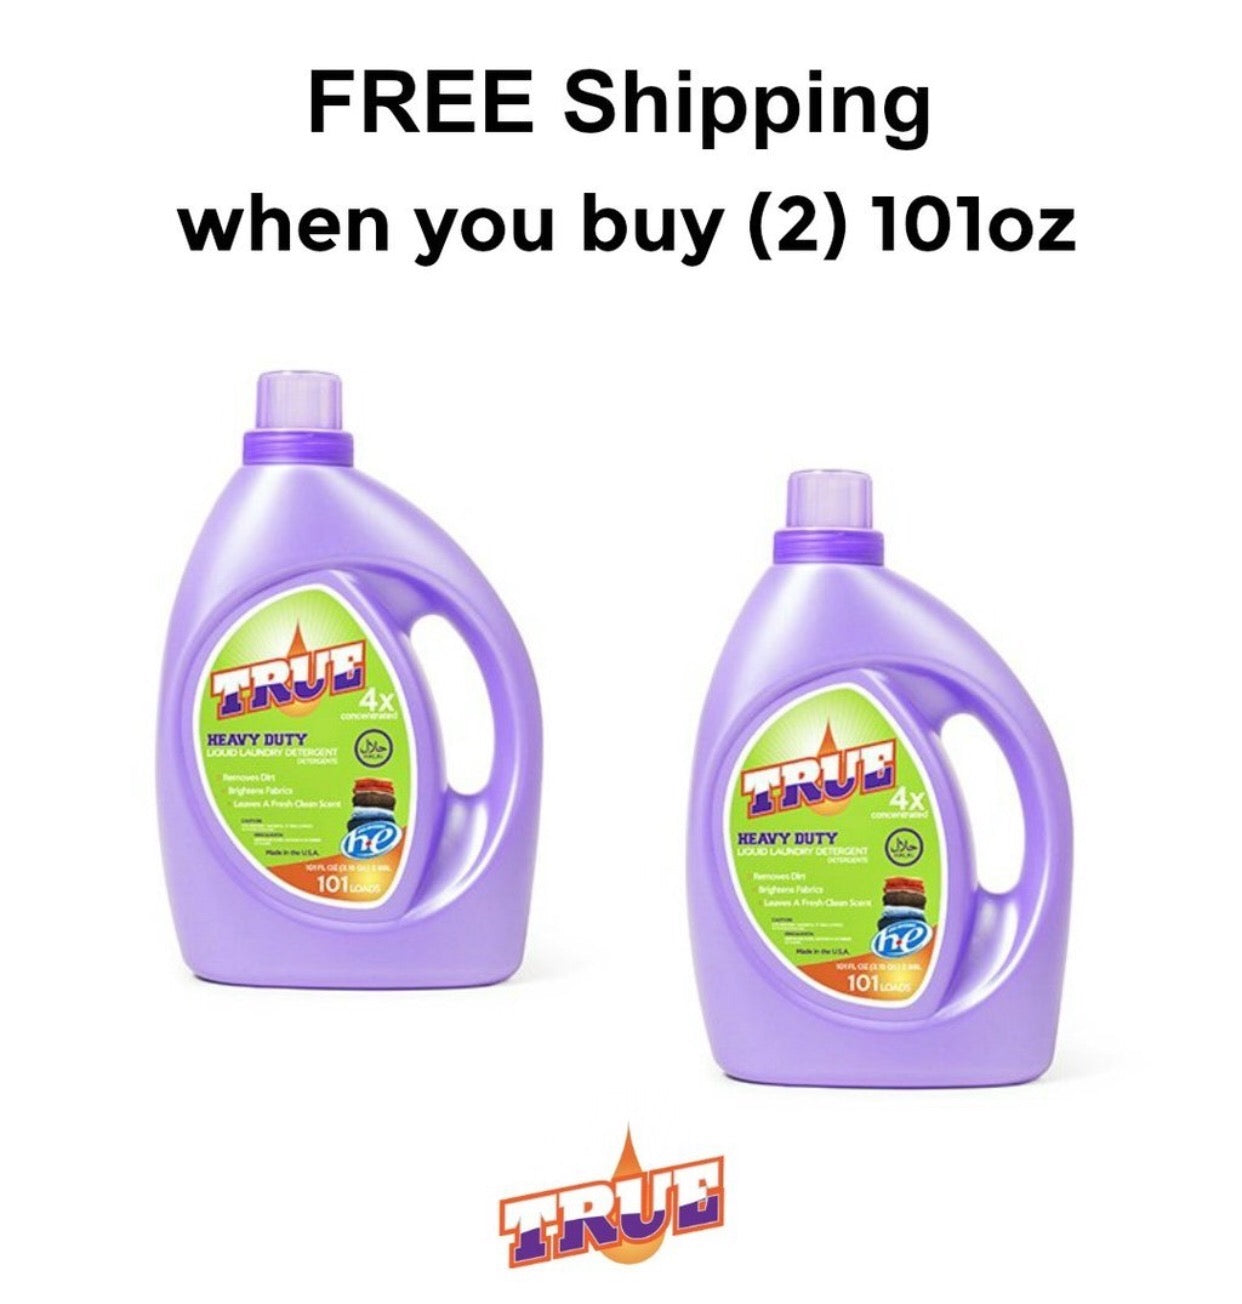 True Laundry Detergent. Buy 2 101 ounce bottle and get free shipping.